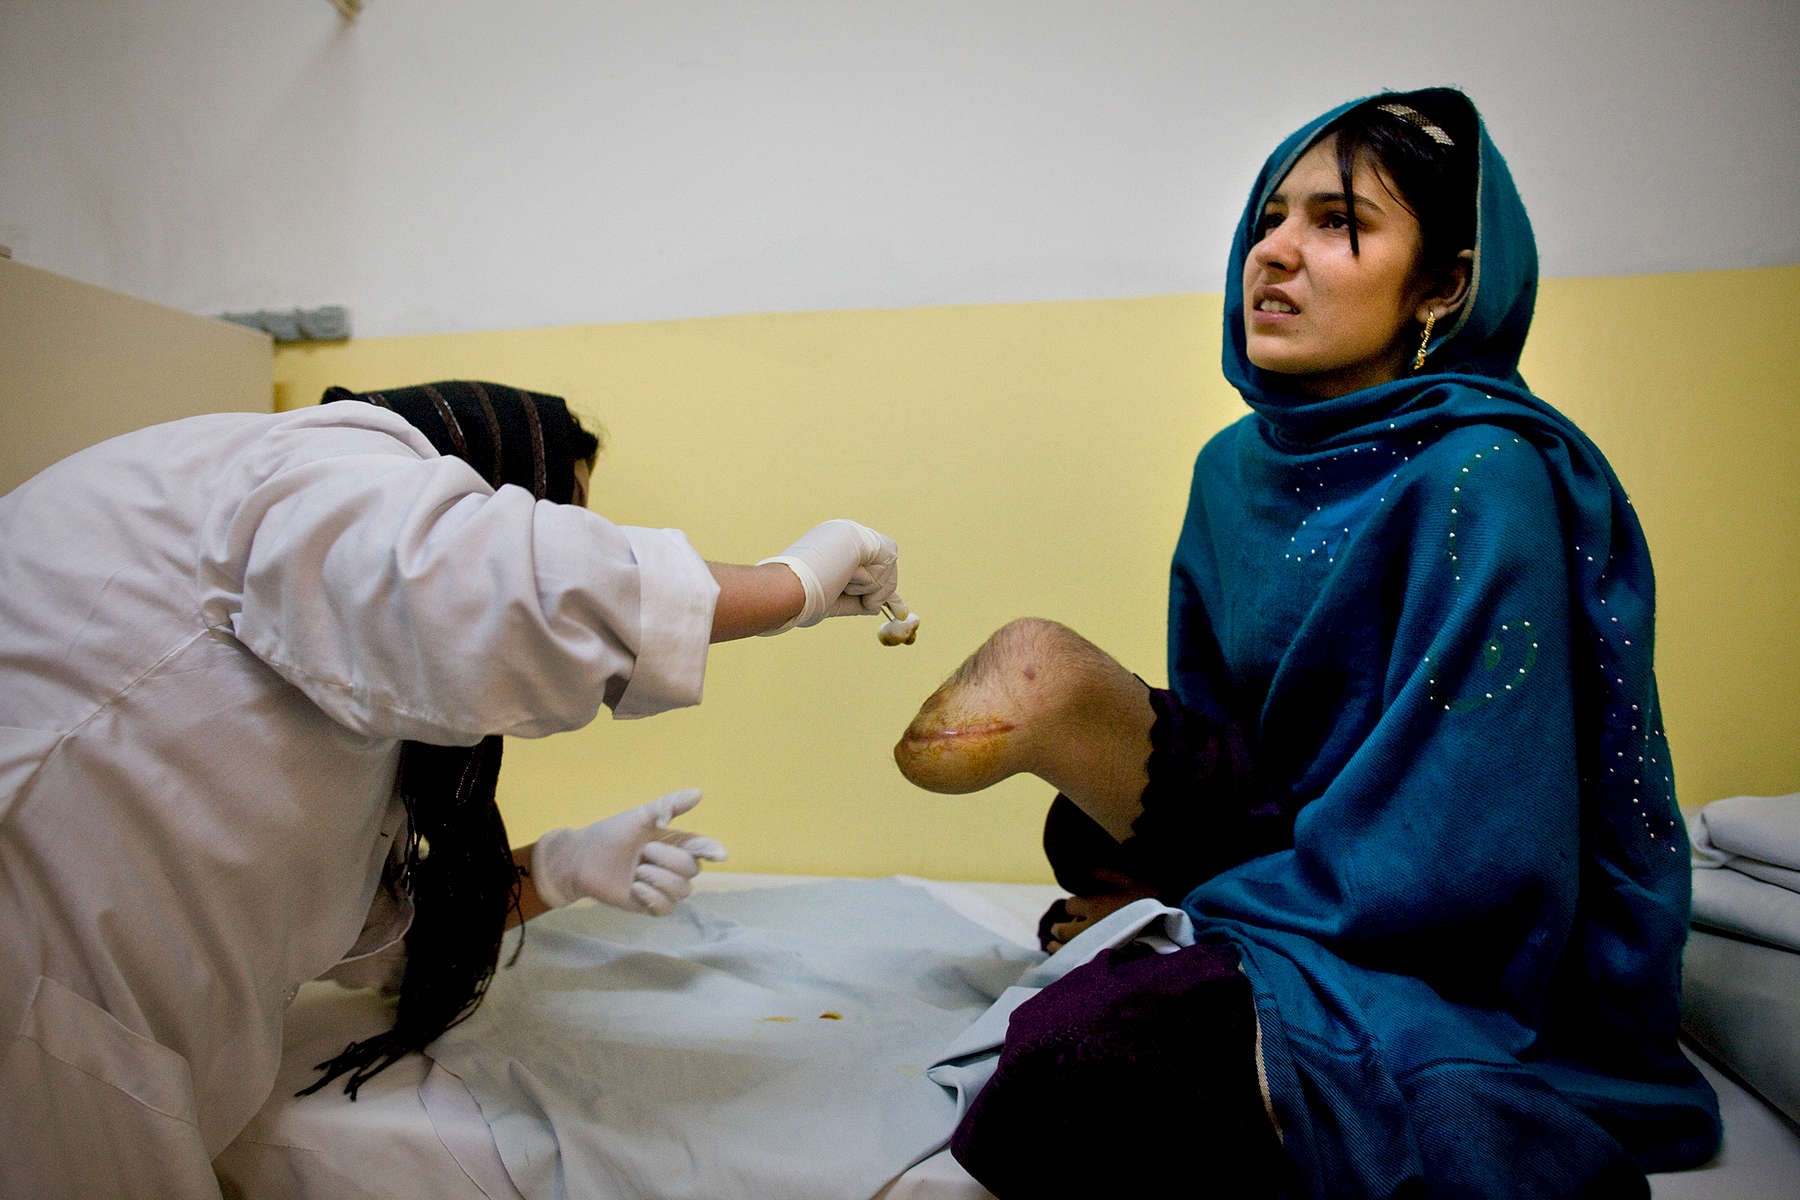 Bibi Adela, age15, from Khost gets her wound treated on her amputated leg at the International Red Cross Orthopedic (ICRC) rehabilitation center November 23, 2009 Kabul, Afghanistan. Bibi Adela lost her leg below the knee from a rocket attack 5 months ago that killed her sister and brother, injuring her mother as well. A recent U.N. report has described 2009 as the deadliest year in terms of civilian casualties in Afghanistan  since the start of the U.S.-led war against Taliban in the country.